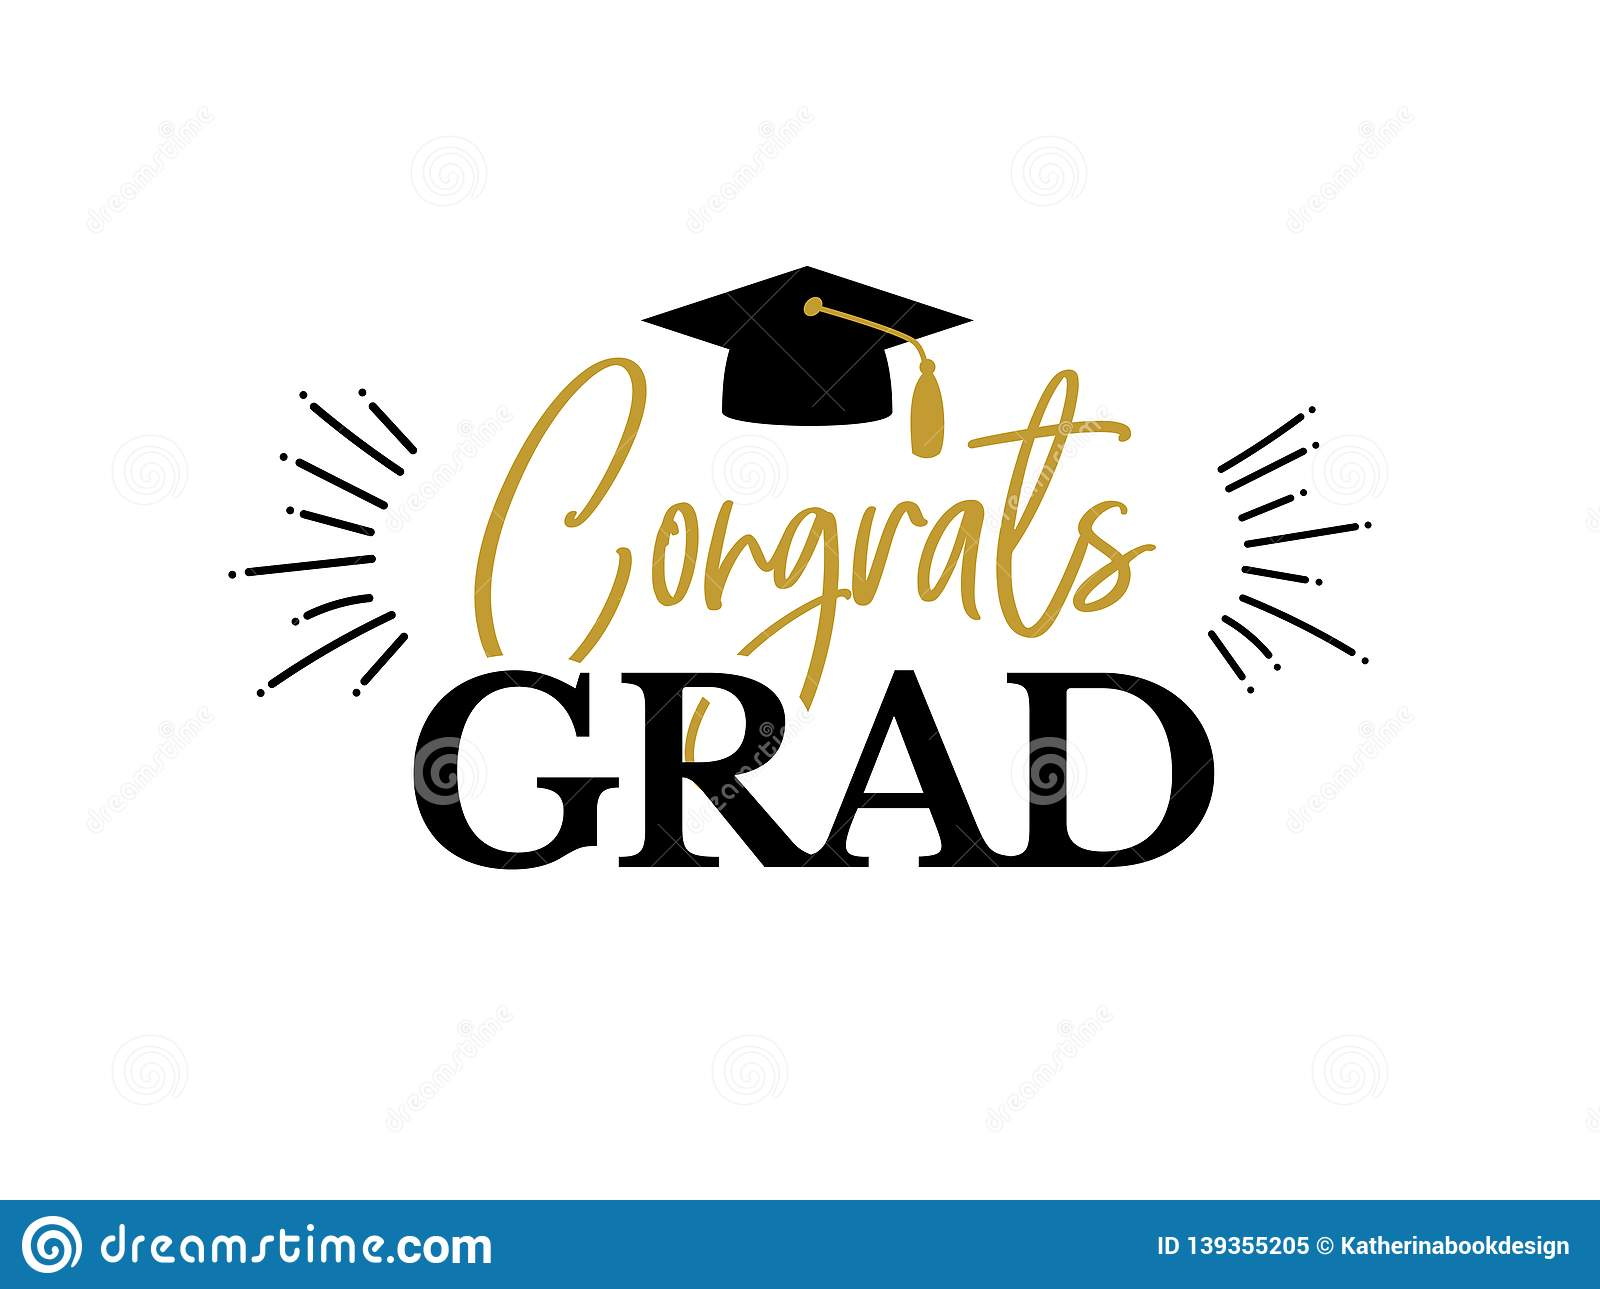 It is an image of Epic Free Printable Graduation Invitations 2020